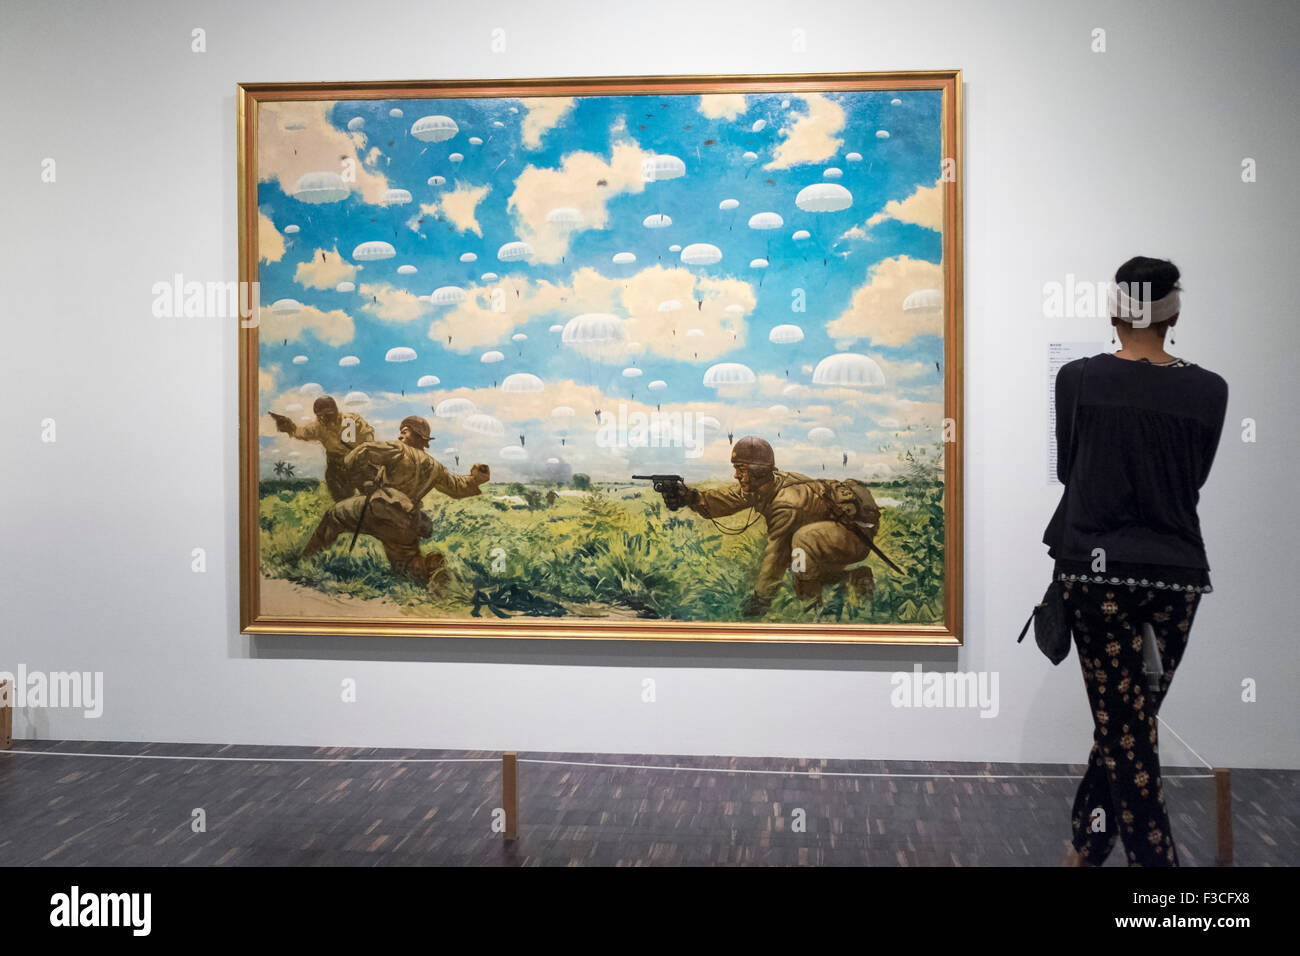 Woman looking at painting  Paratroops Descending on Palembang by Goro Tsuruta at National Museum of  Modern Art - Stock Image